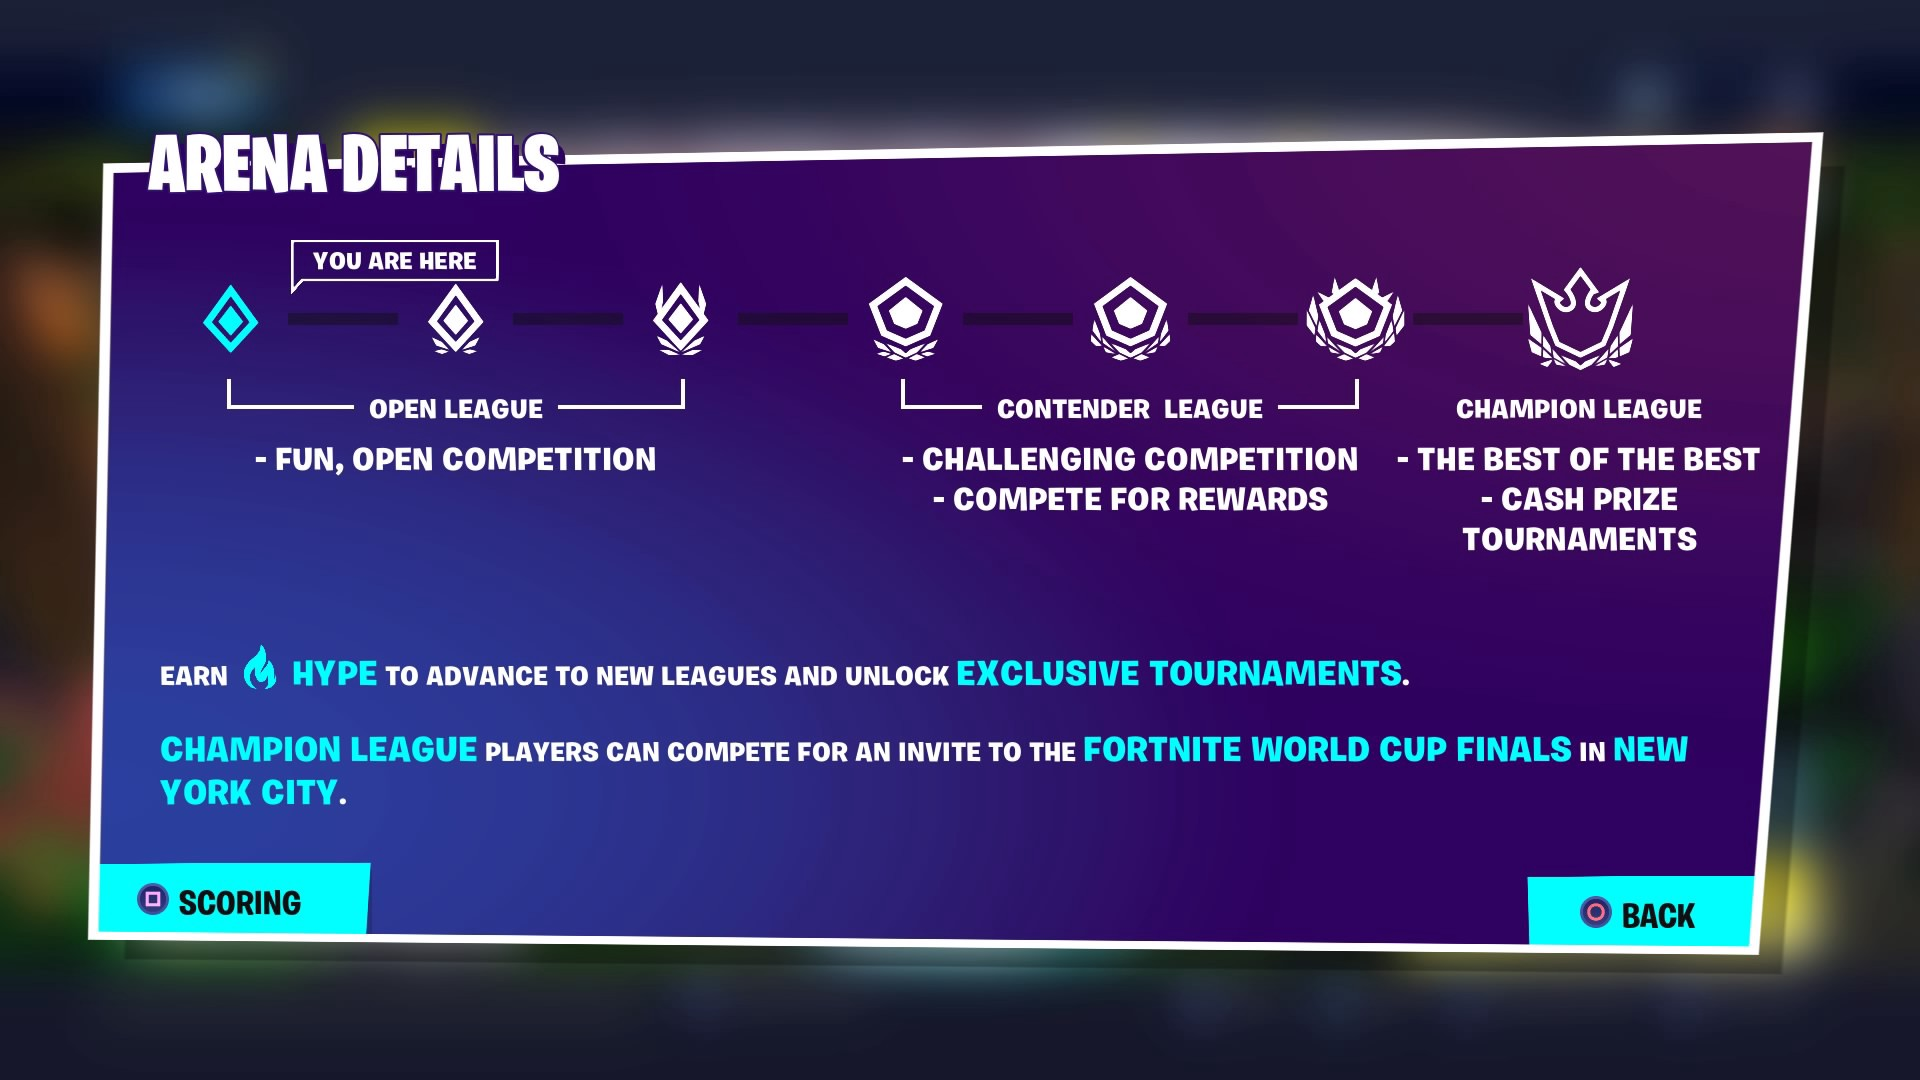 The Fortnite World Cup Begins! - Intergalactic Gaming - Medium